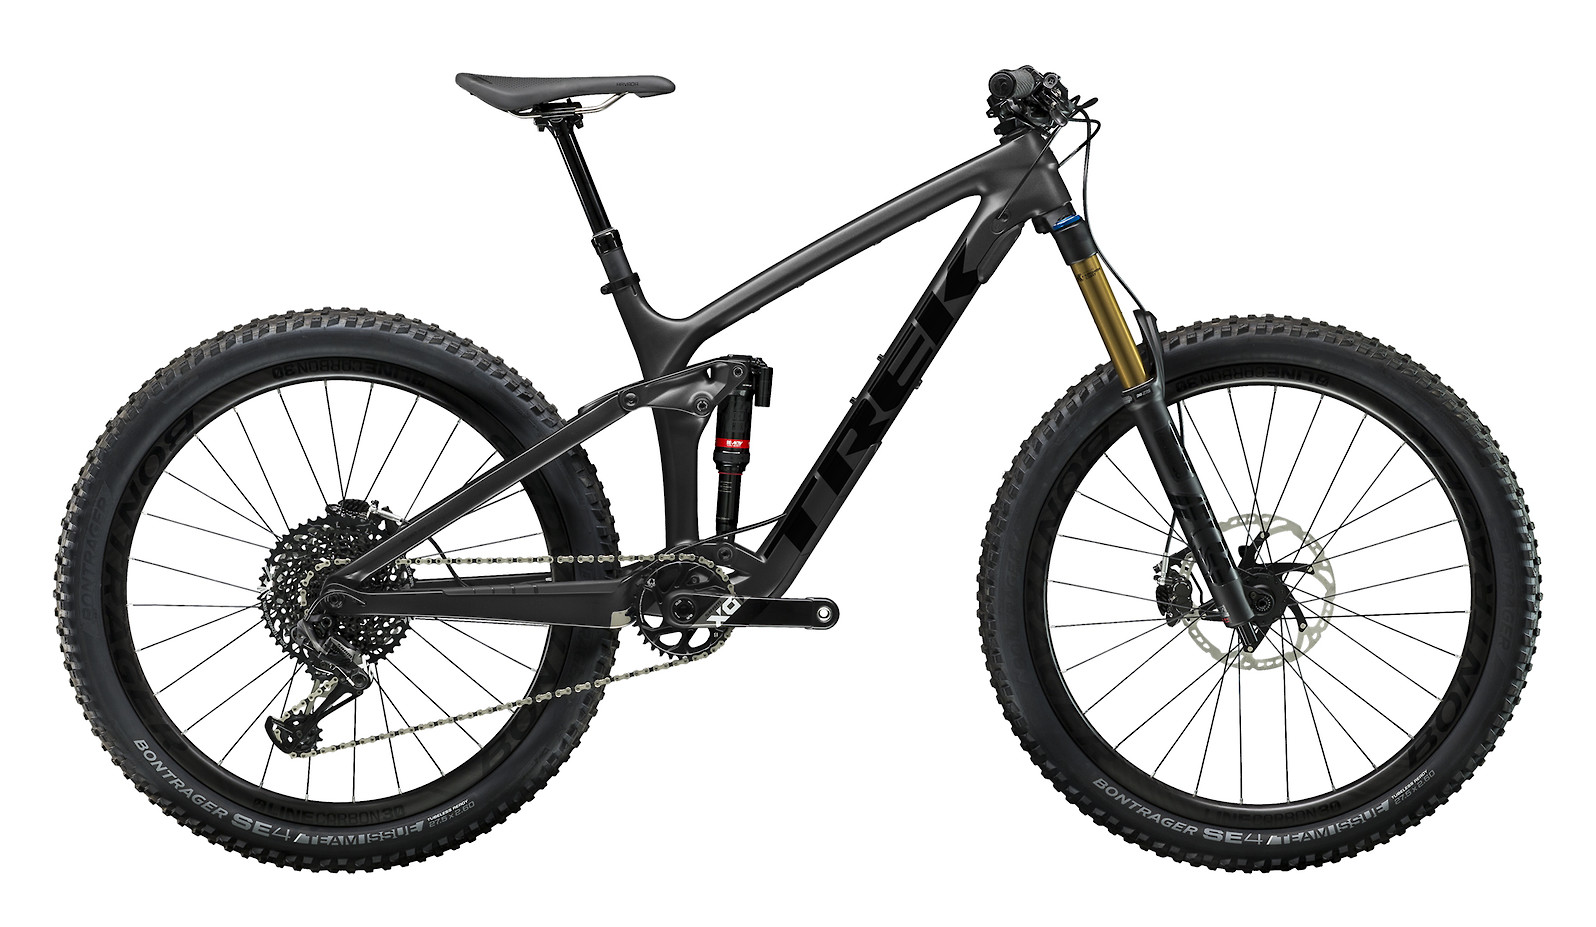 2019 Trek Remedy 9 9 - Reviews, Comparisons, Specs - Mountain Bikes